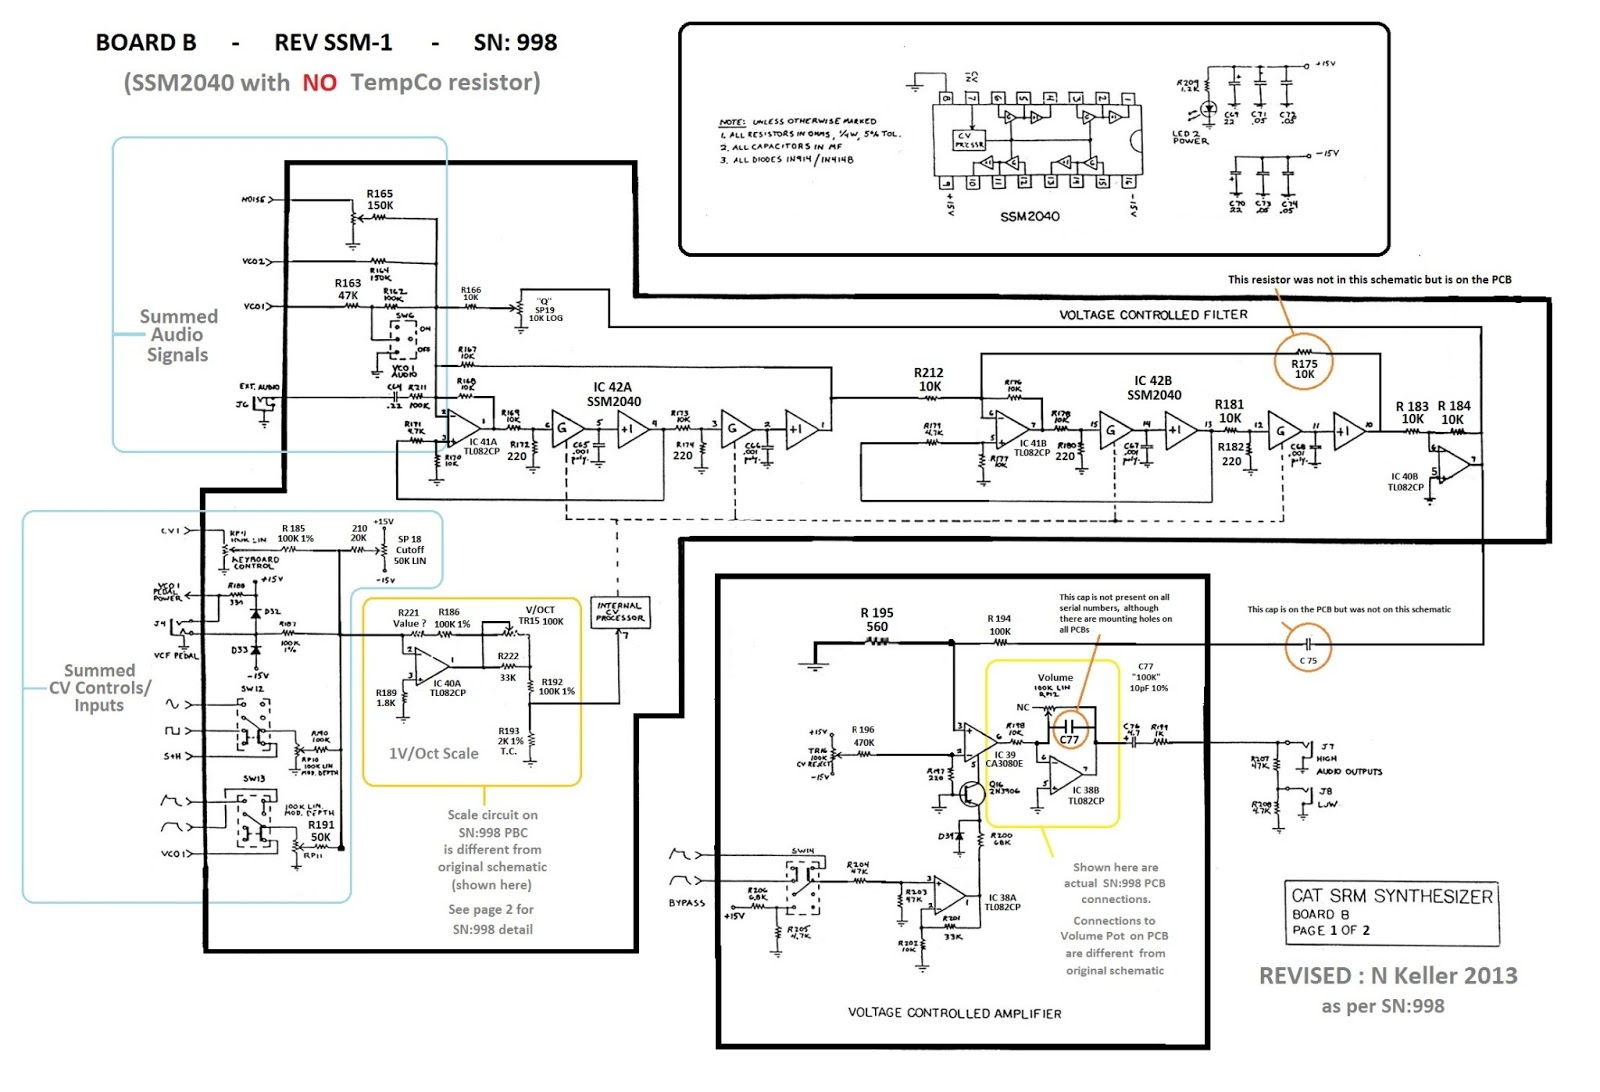 deutz 1013 engine wiring diagram deutz pto clutch diagram